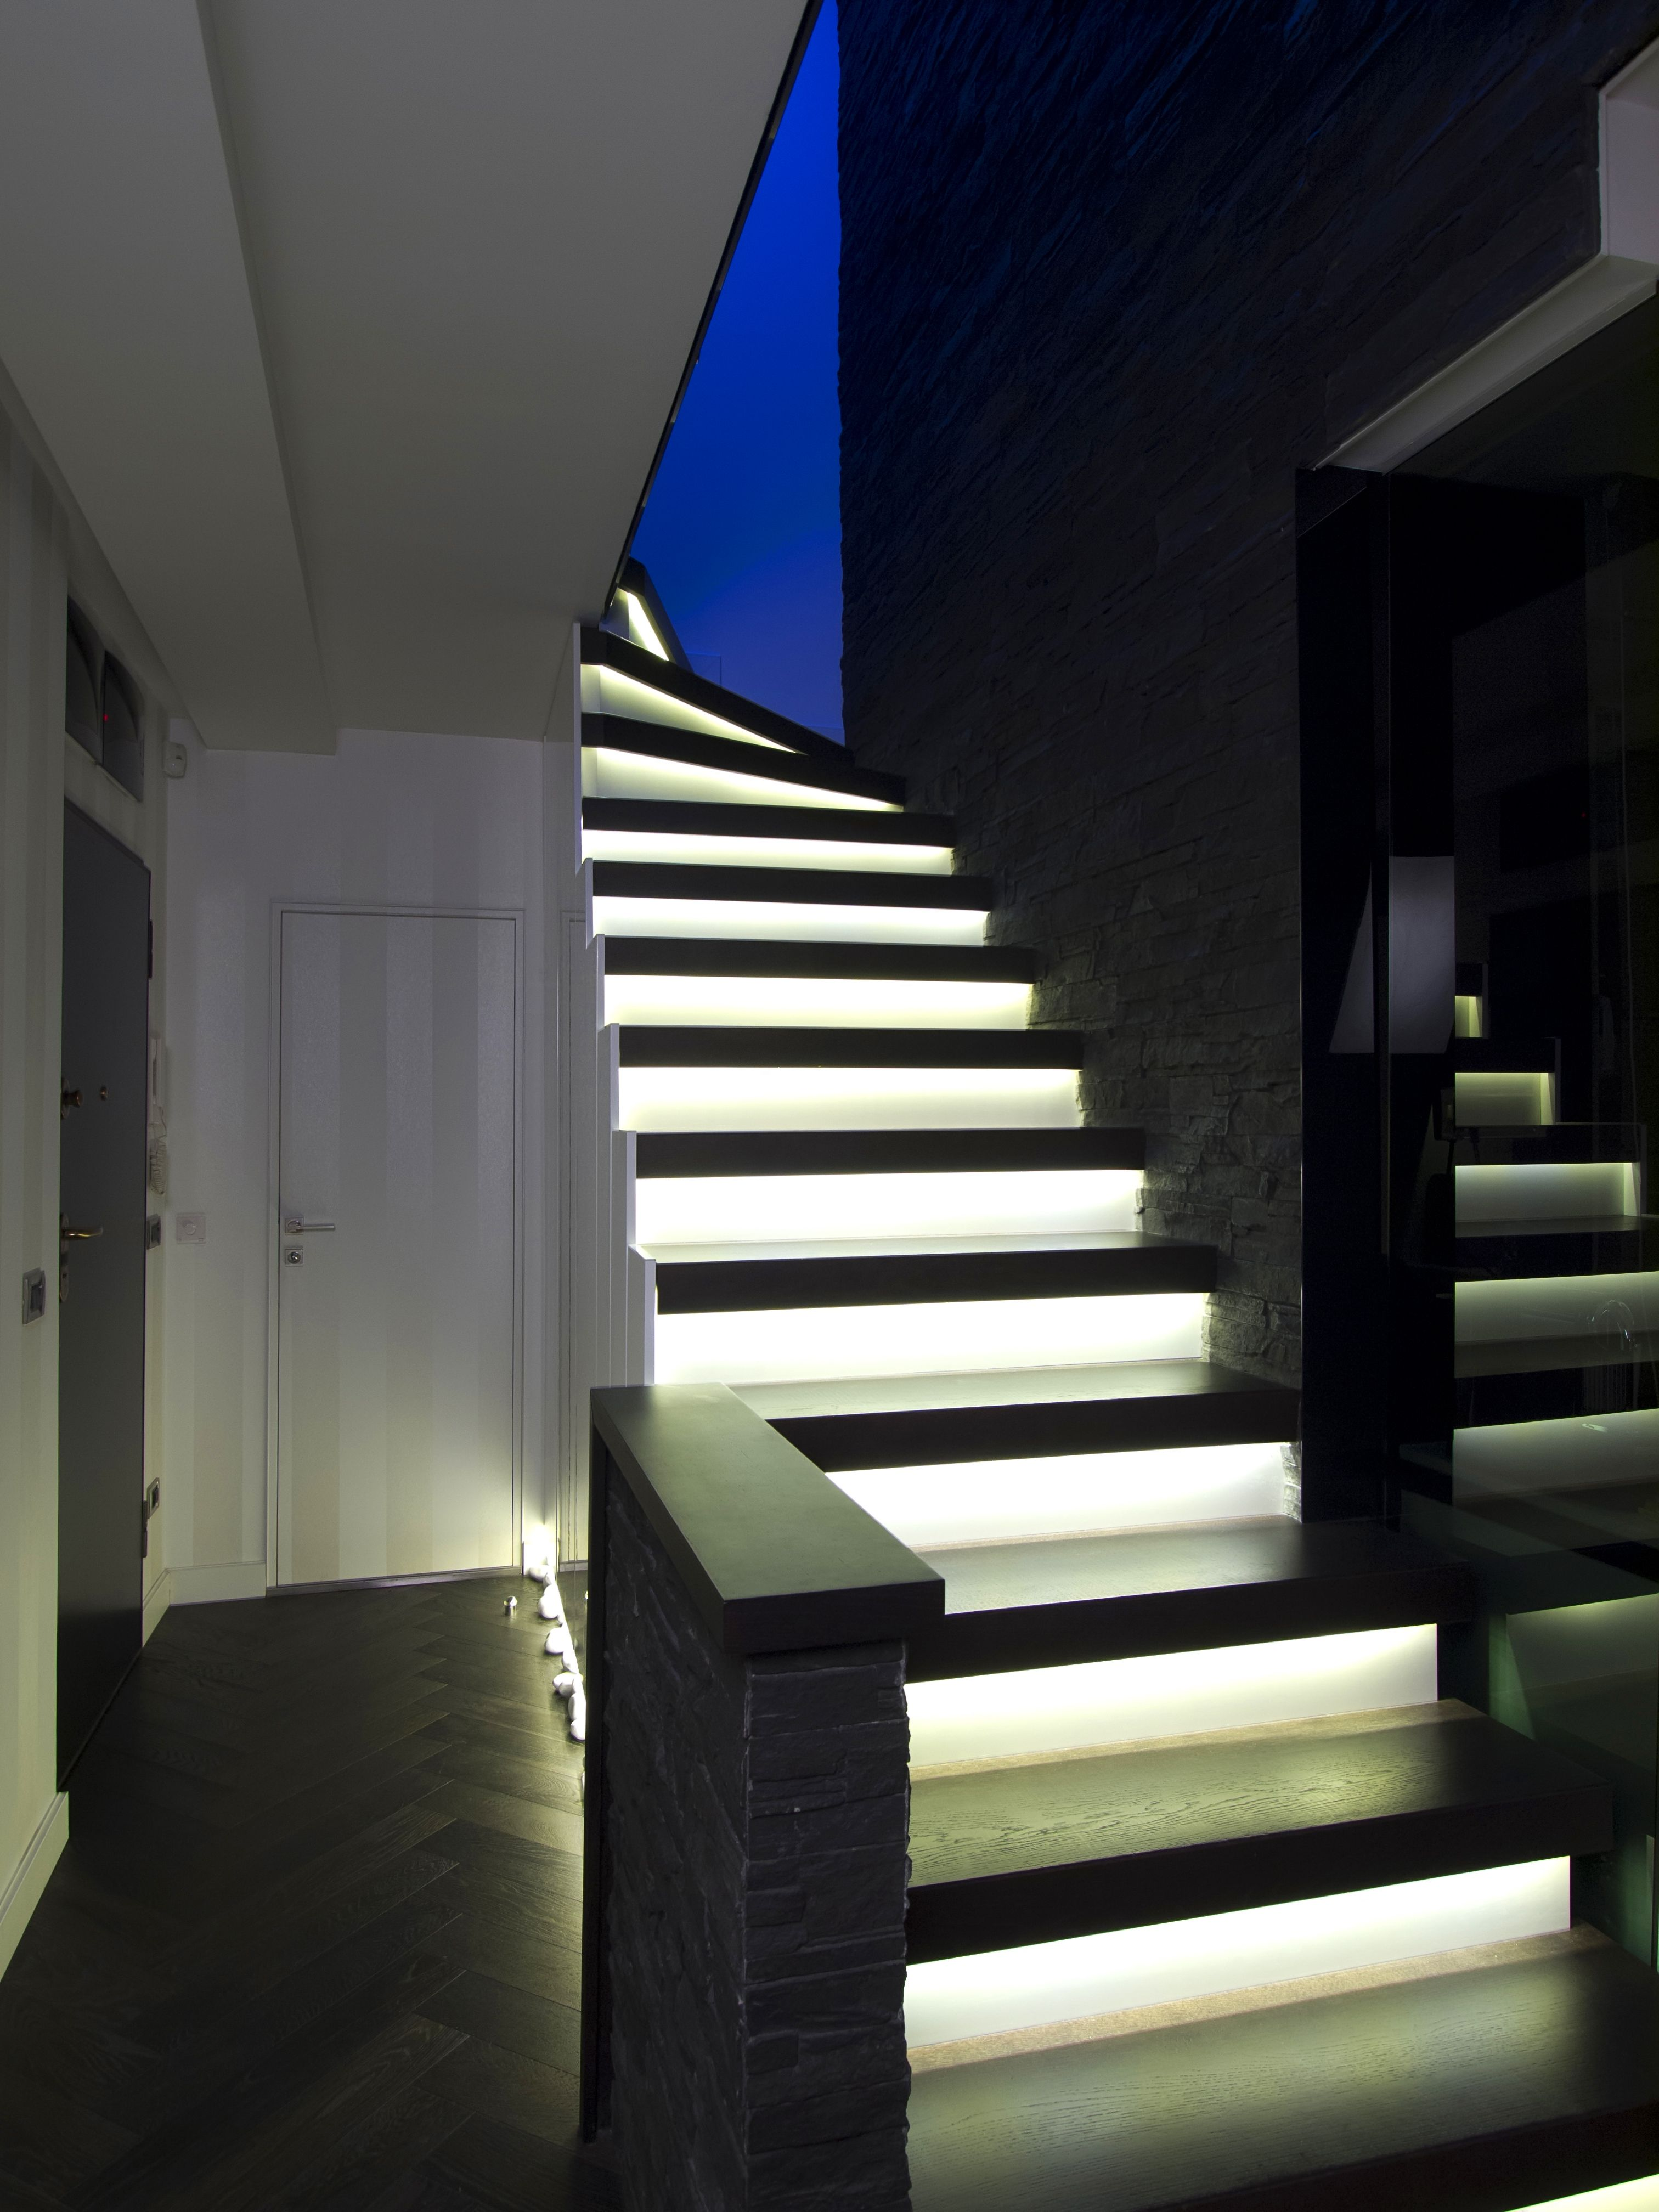 Bespoke Staircasing for a private residence in